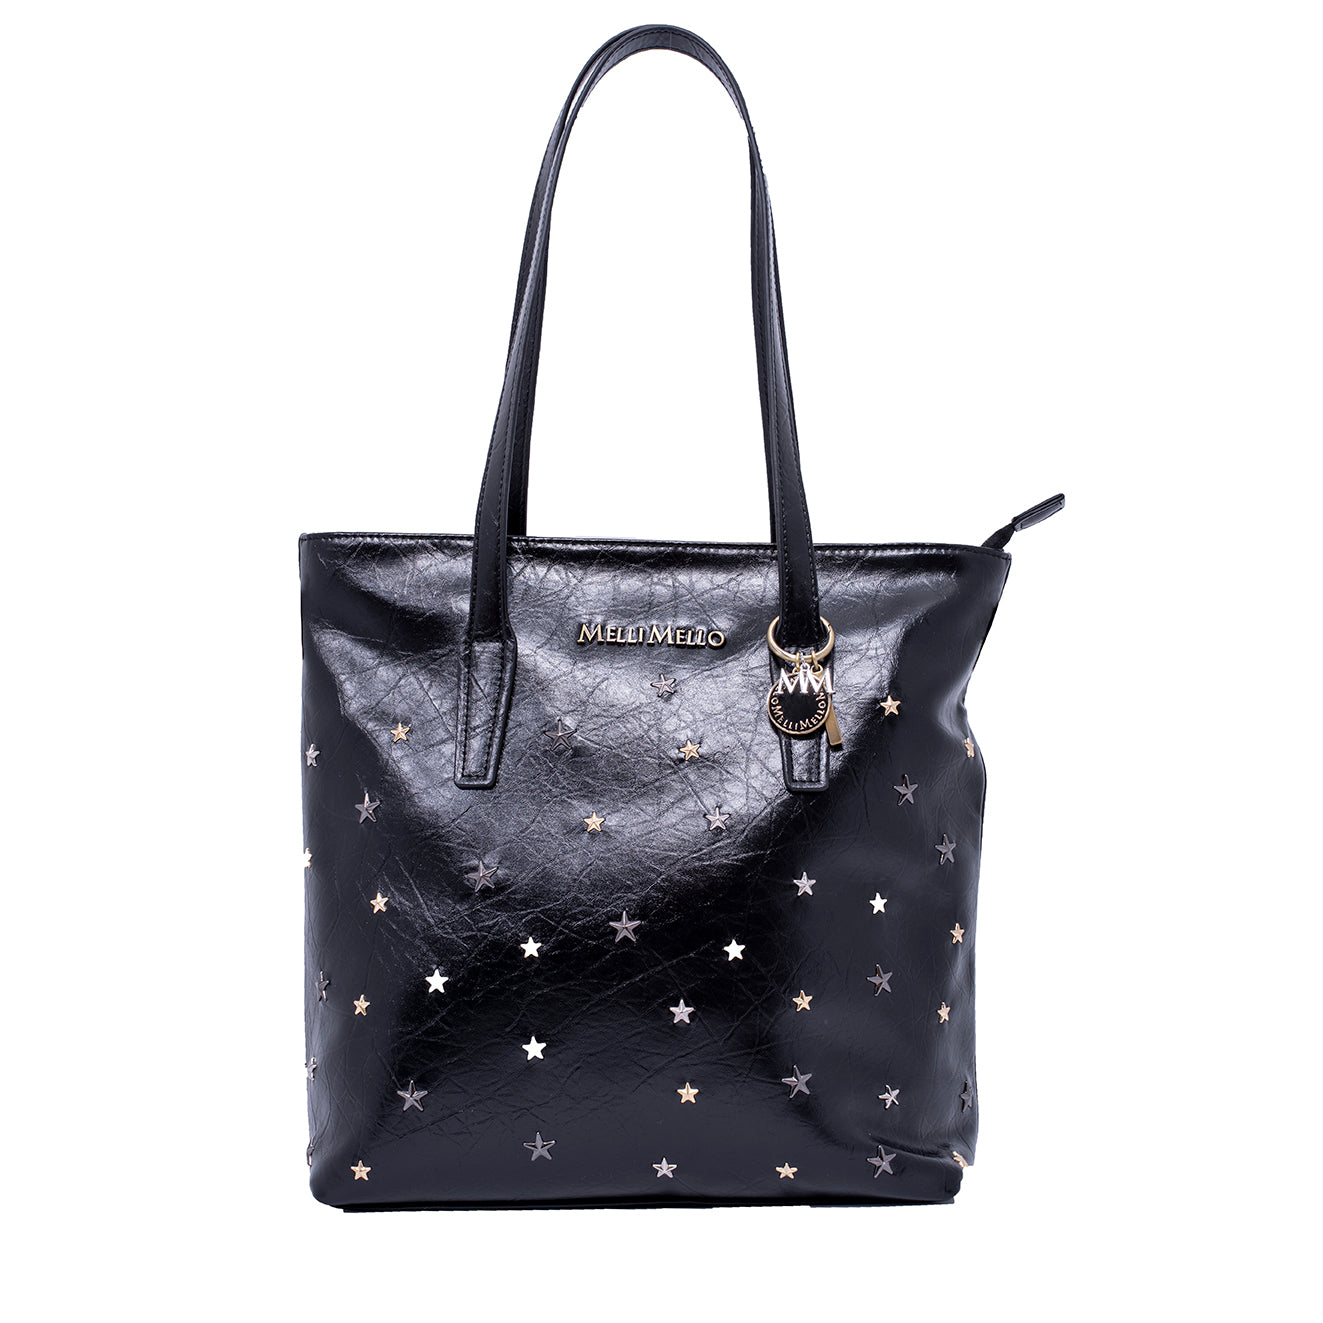 To the stars shopper